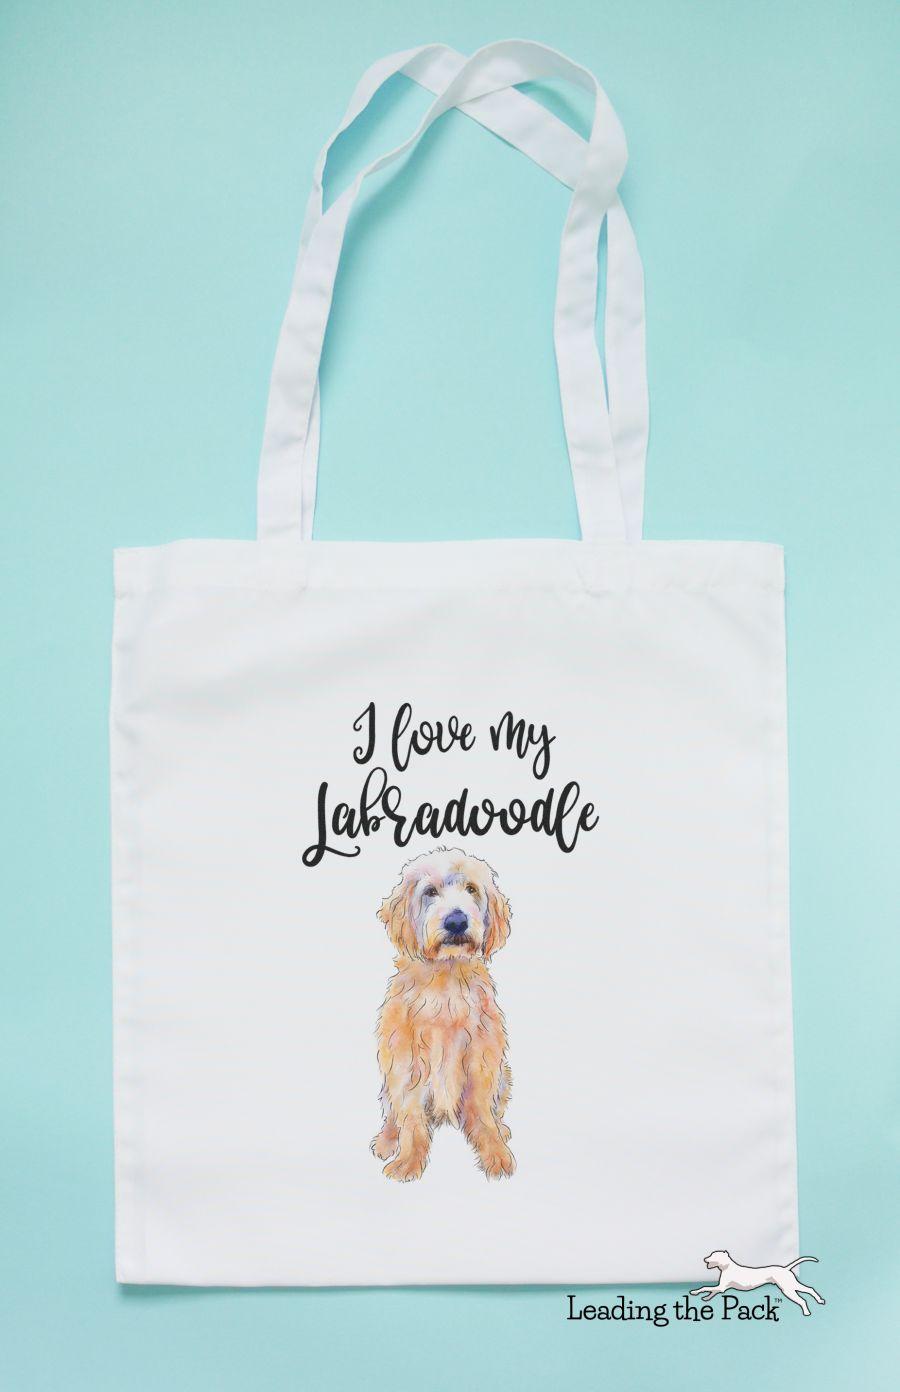 I love my labradoodle tote bag